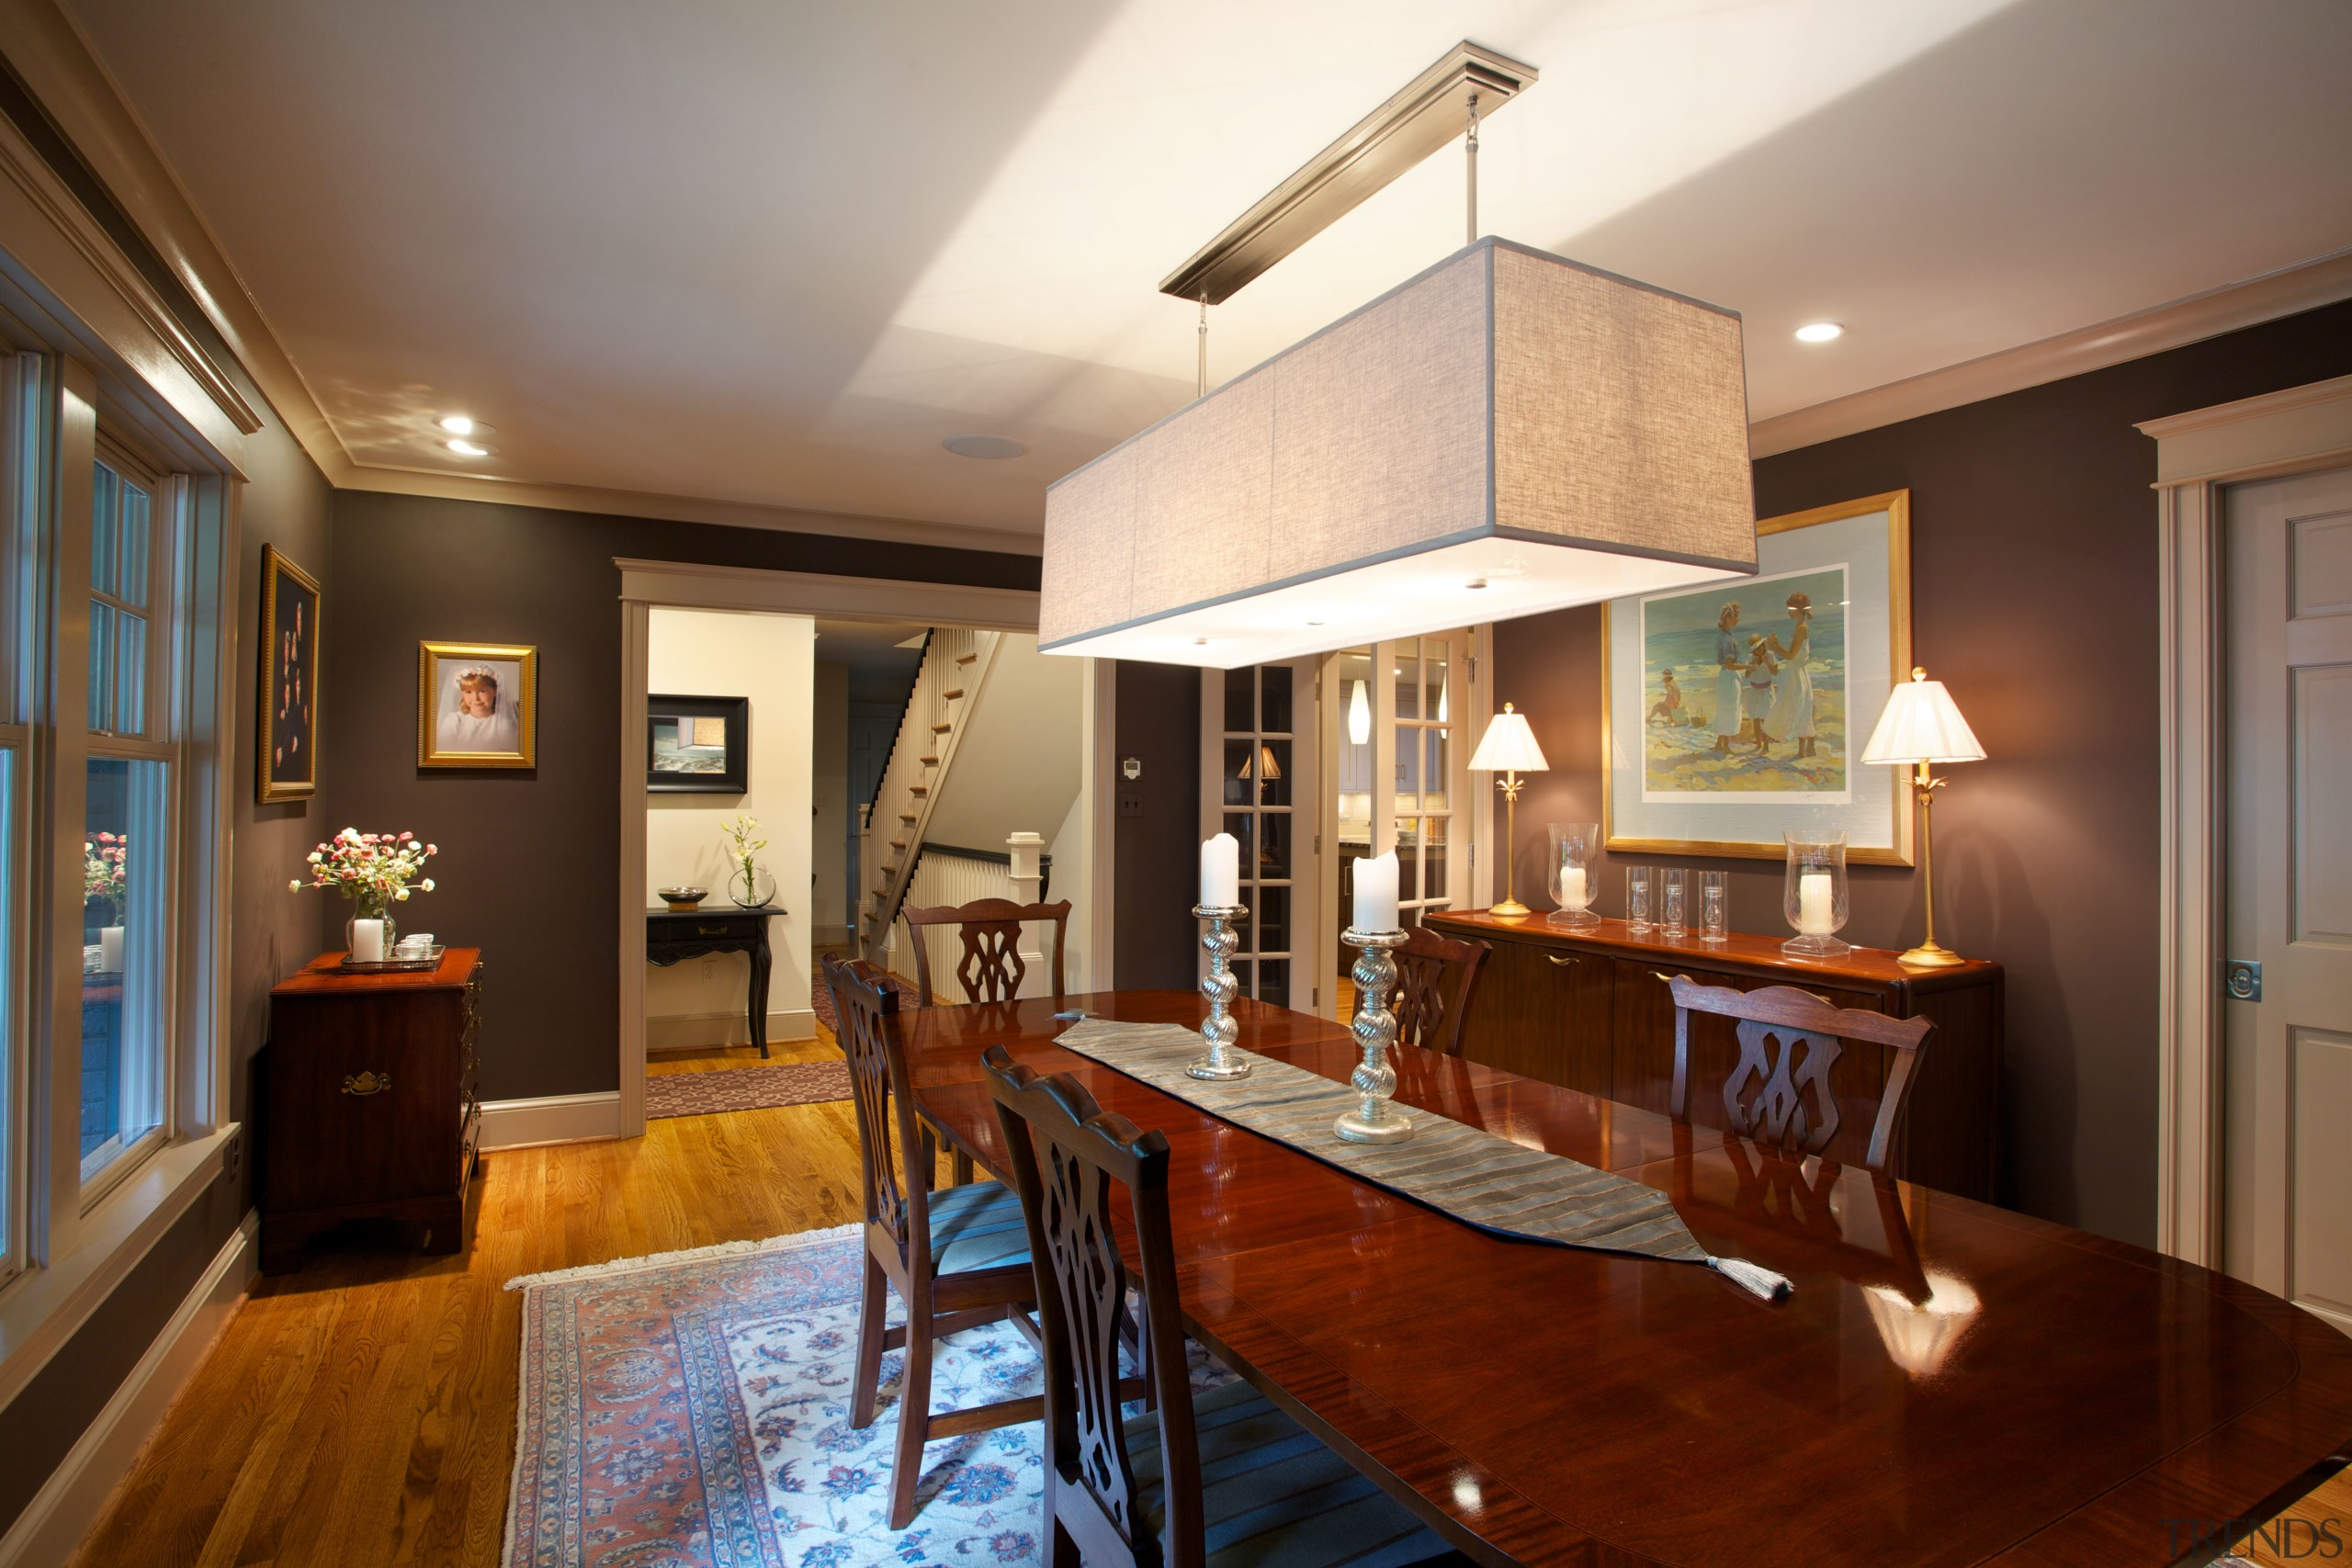 The reconfigured entryway opens to the dining room, ceiling, dining room, home, interior design, living room, real estate, room, brown